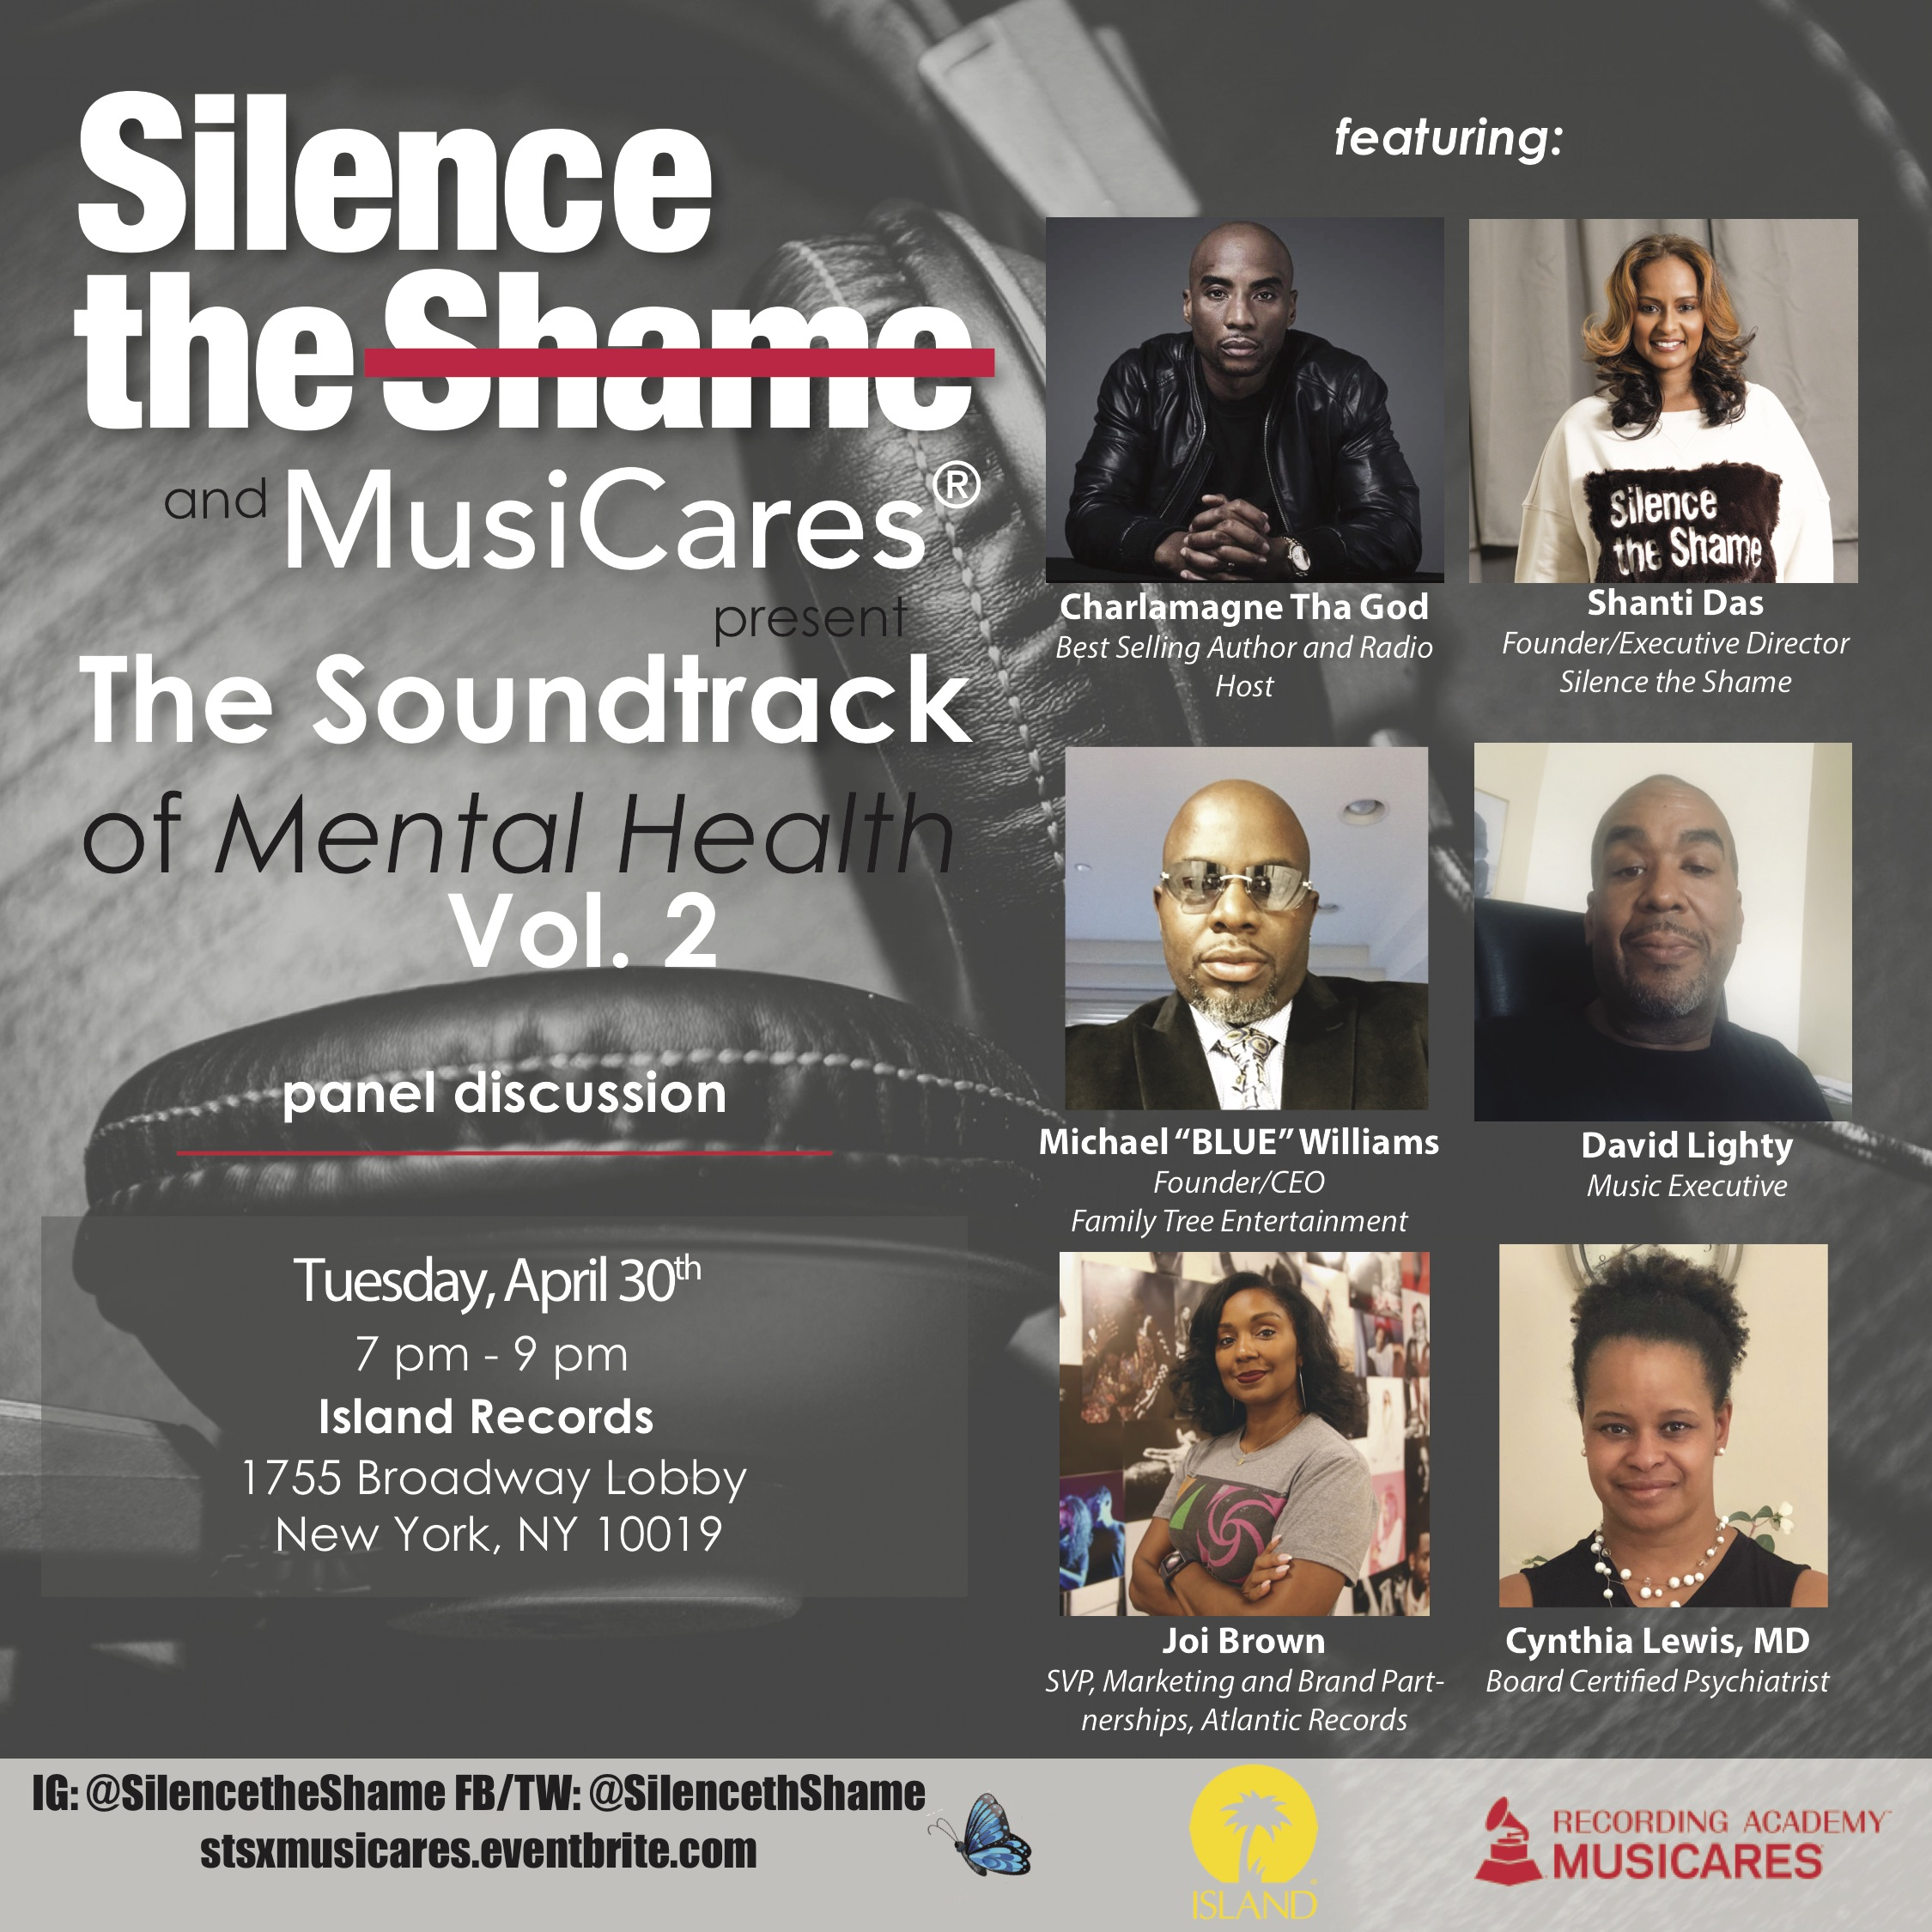 Silence the Shame and MusiCares Present the Soundtrack of Mental Health Part 2